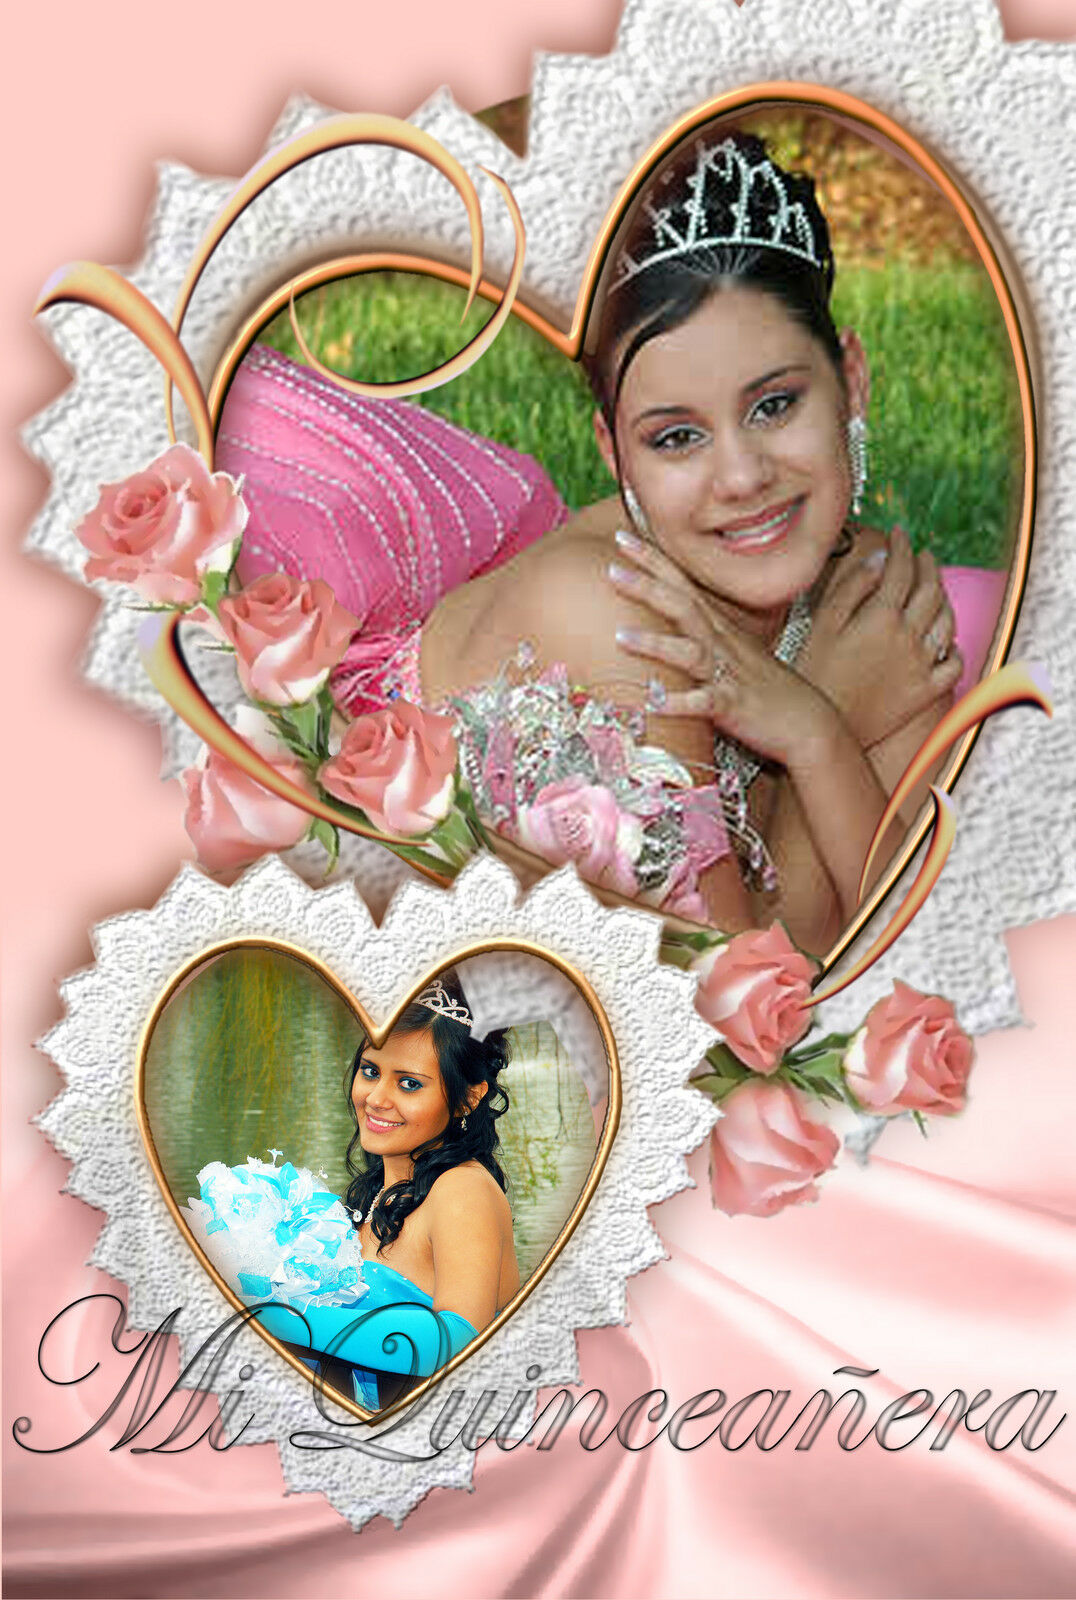 200 Photoshop Templates for Quinceañera-Quinceanera PSD Vol. 3